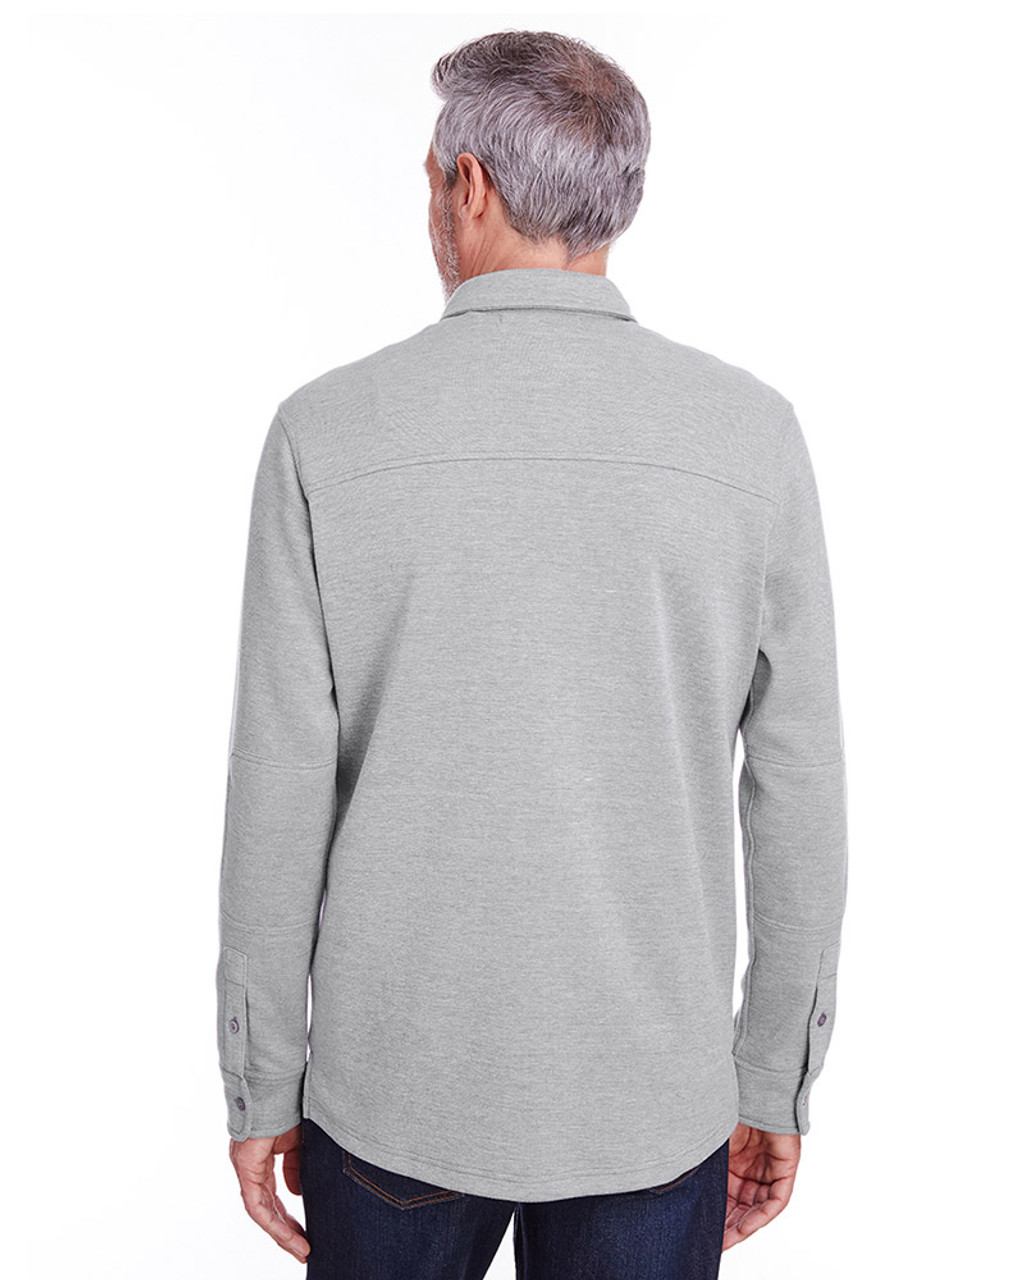 Grey Heather - back, M708 Harriton Adult StainBloc™ Pique Fleece Shirt-Jacket | Blankclothing.ca